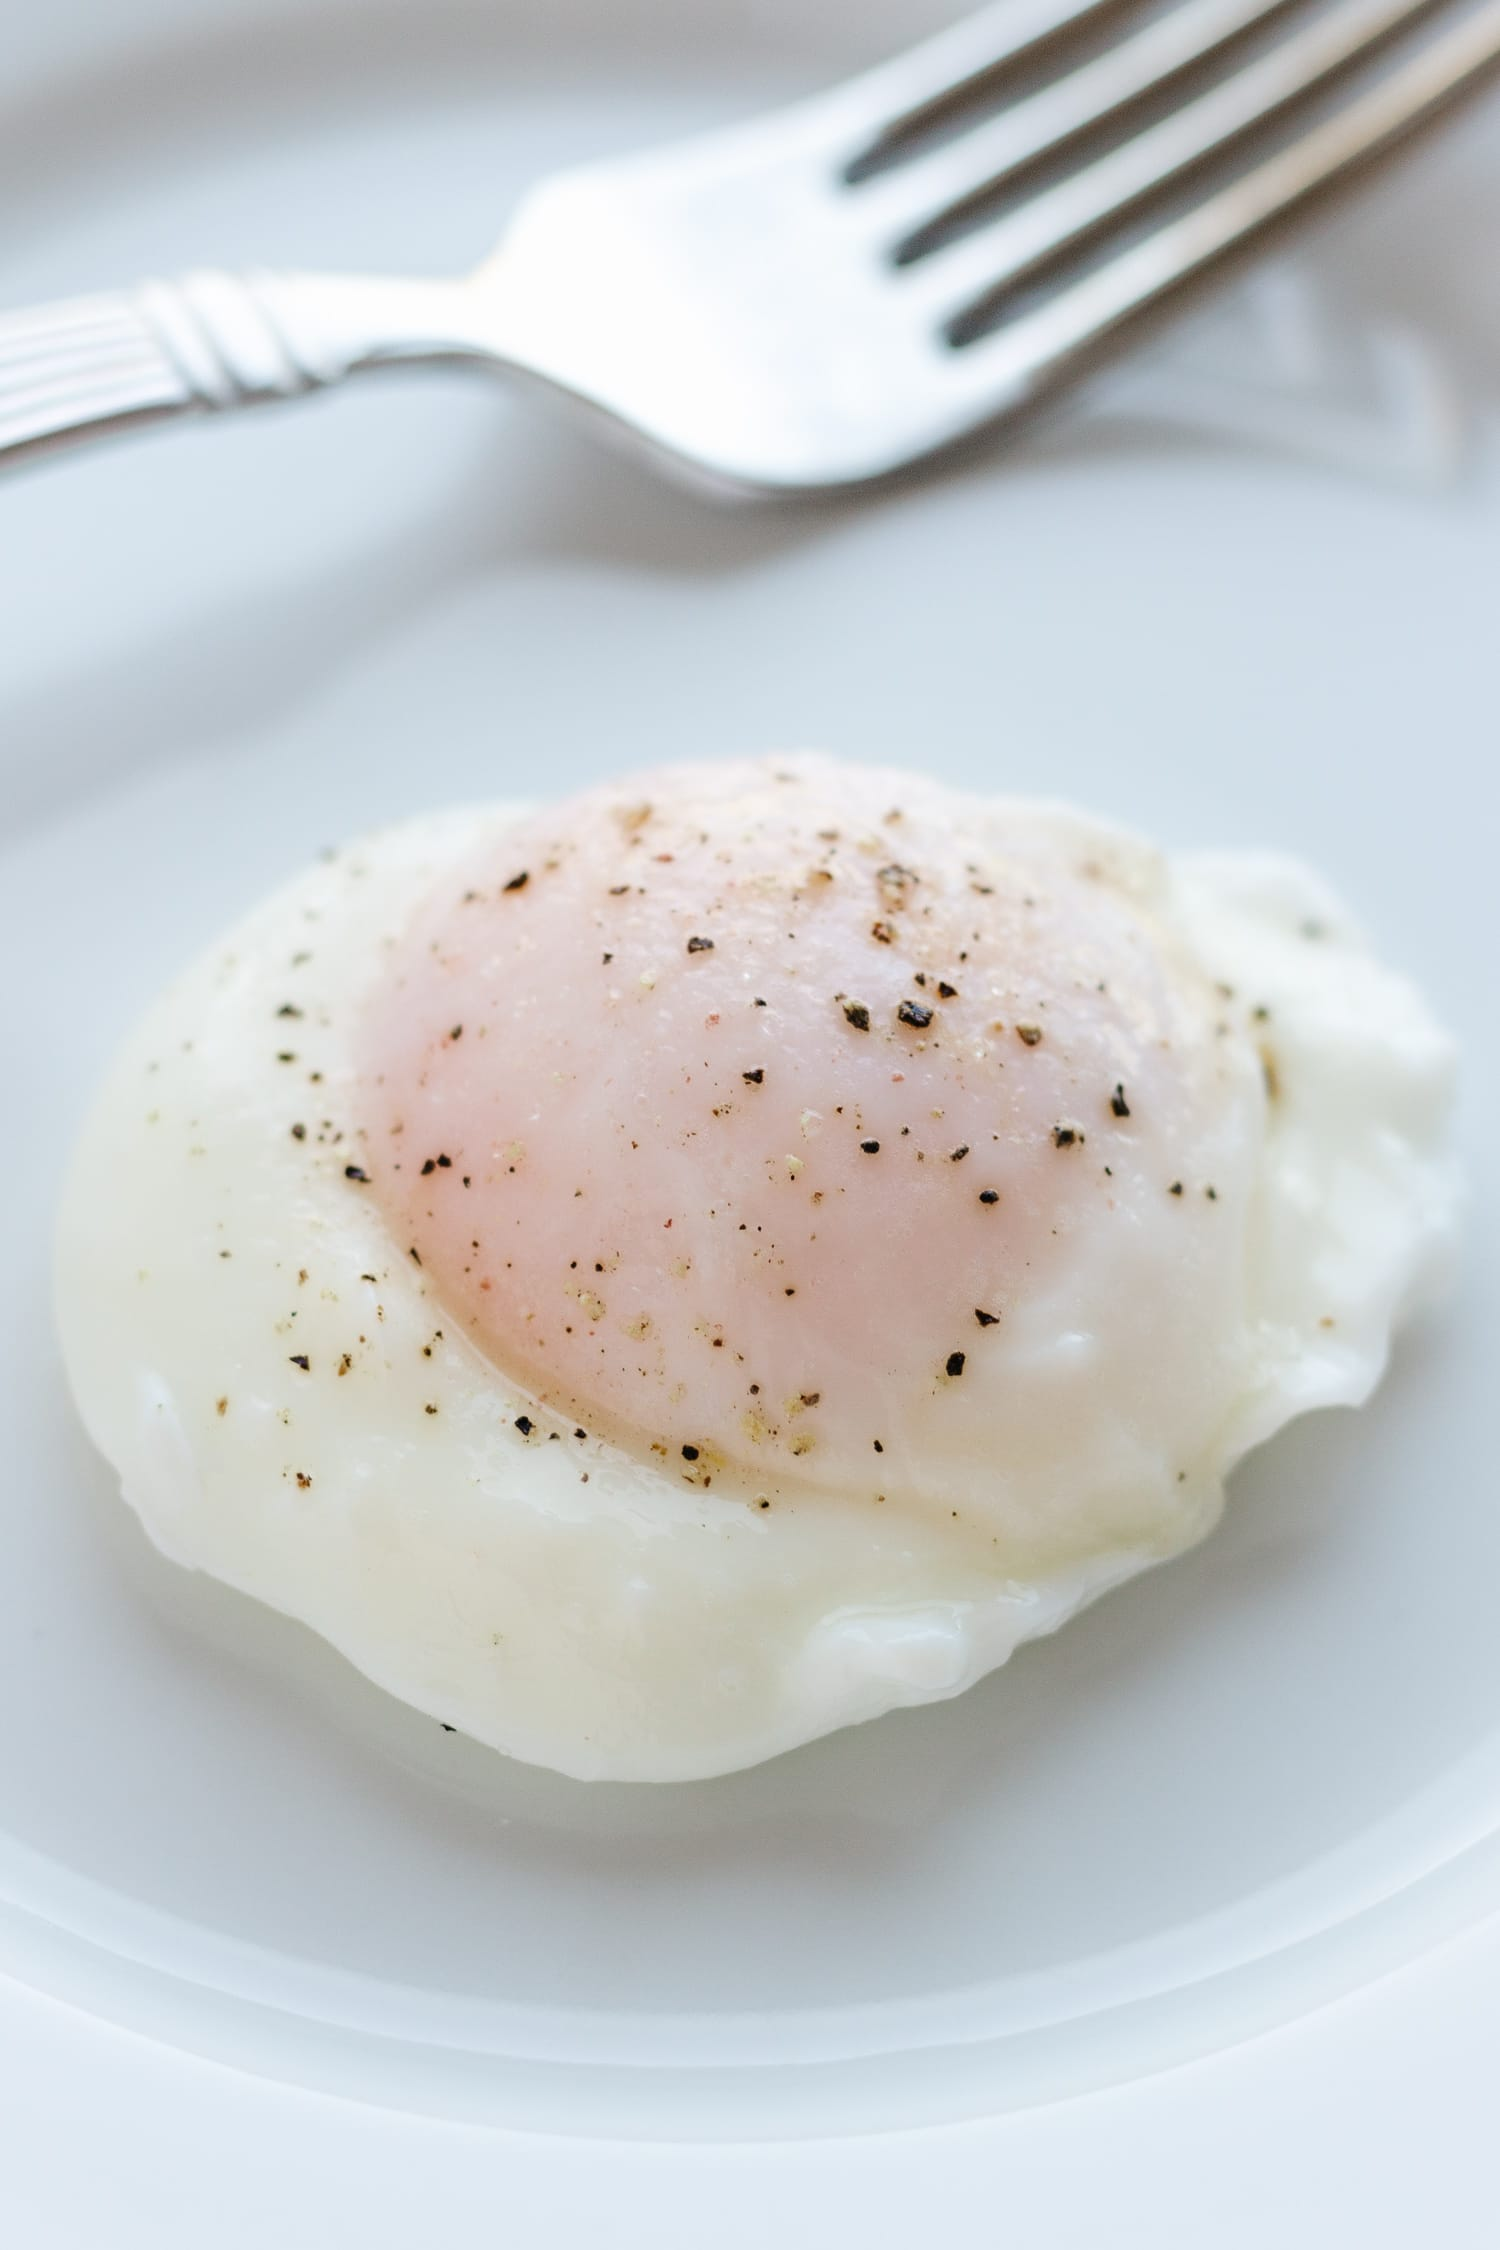 poached egg with a fork on a white plate